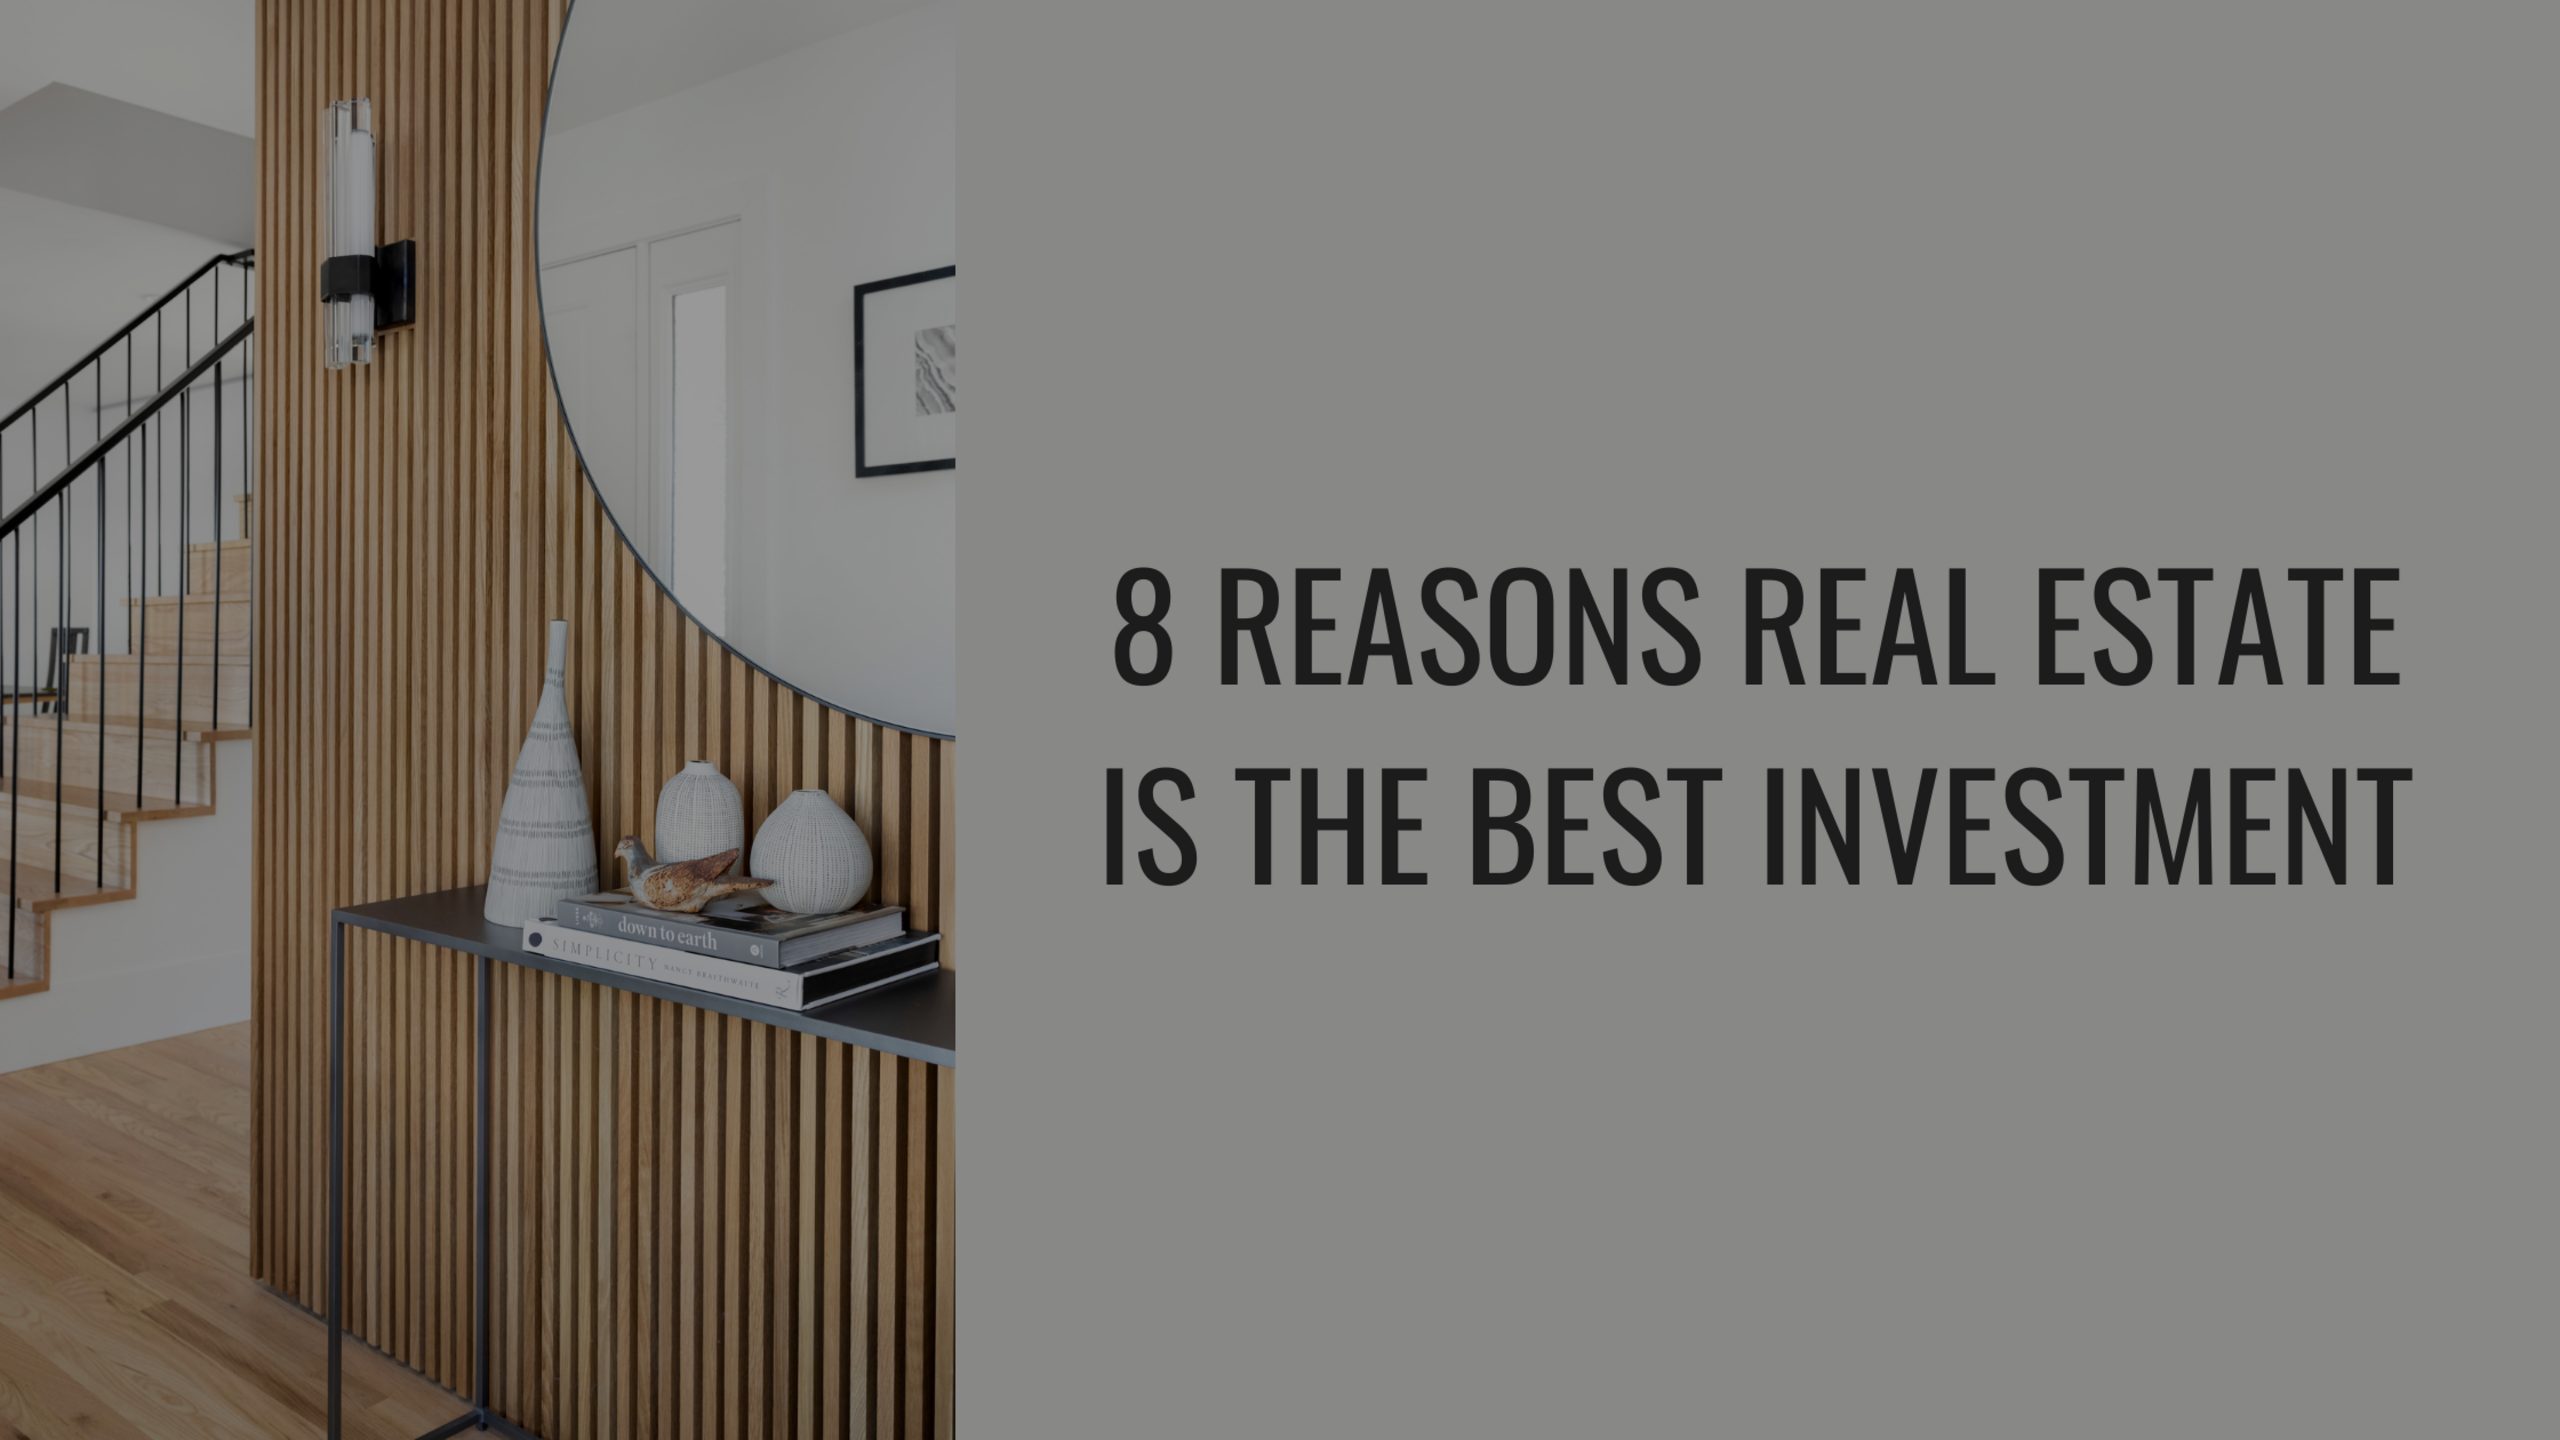 8 Reasons Why Real Estate is the Best Investment